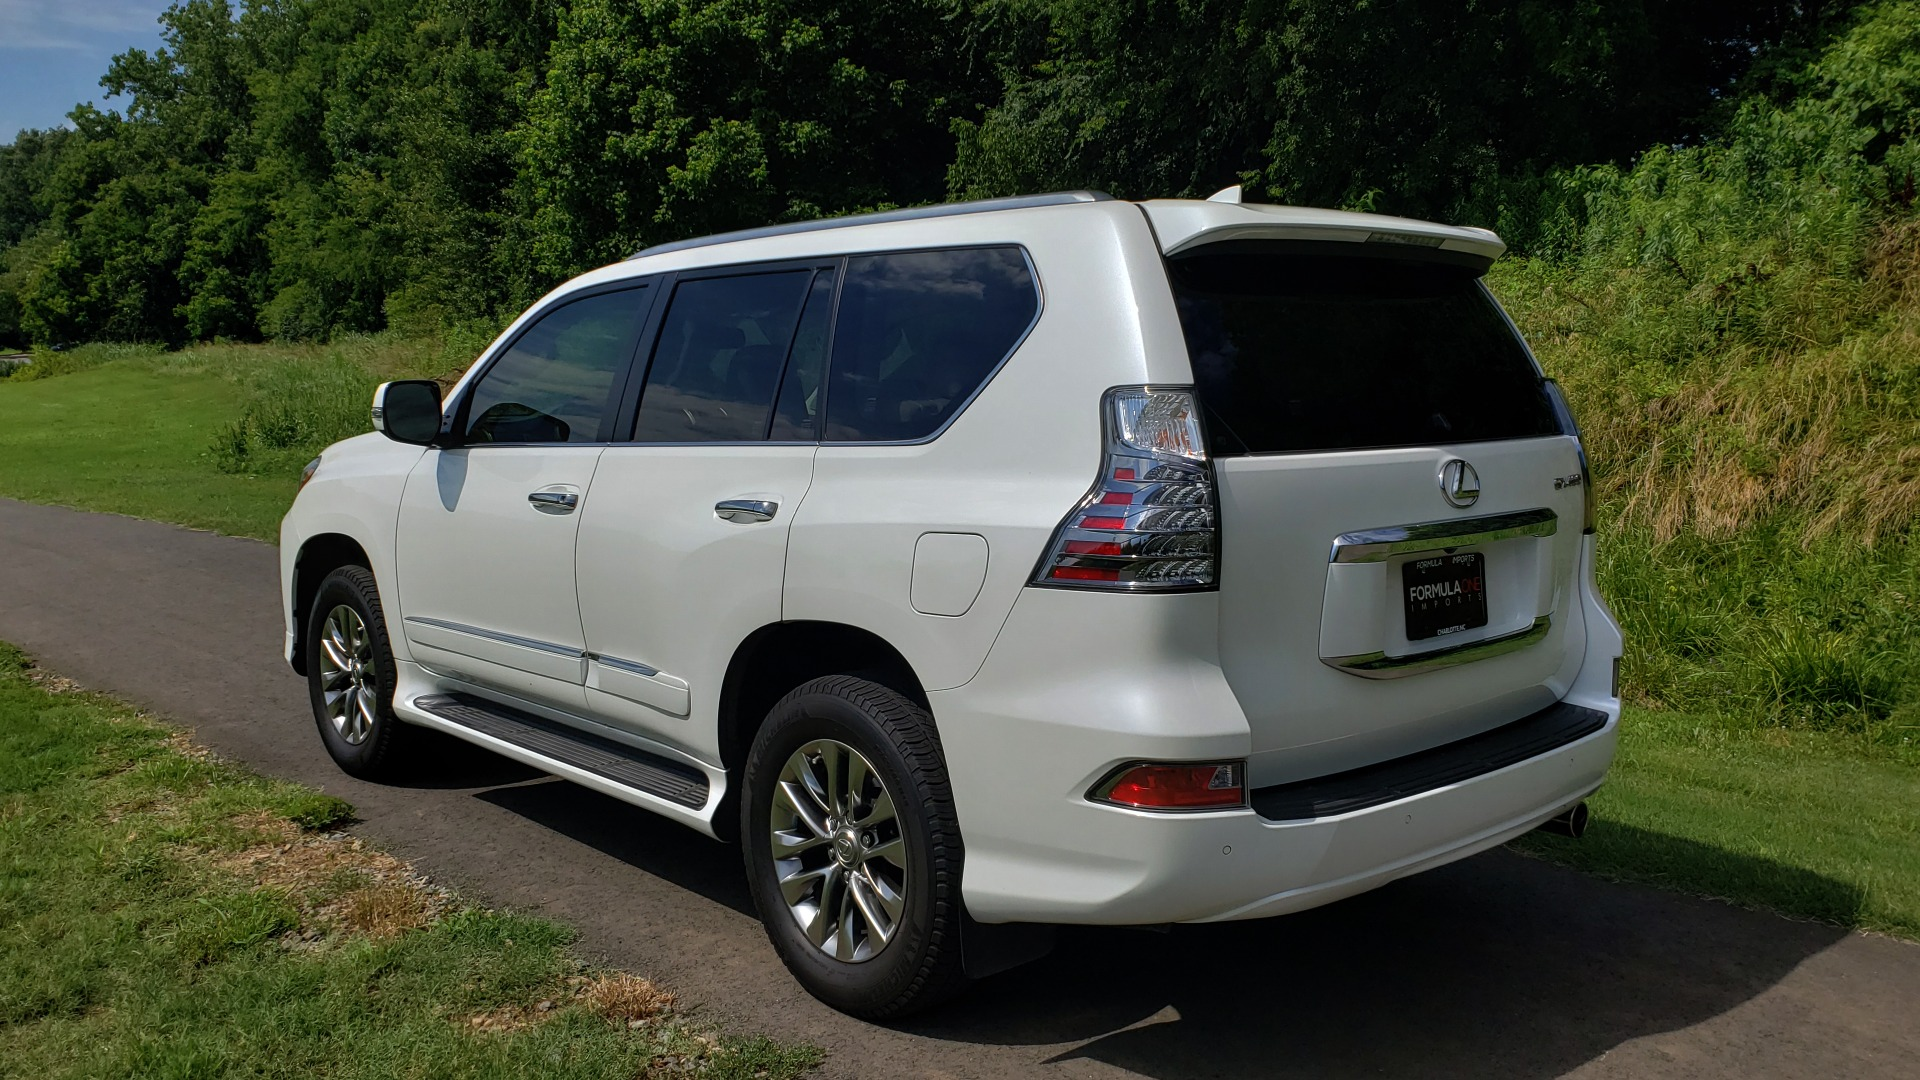 Used 2019 Lexus GX 460 LUXURY 4WD / DRVR SPRT PKG / MARK LEV SND / DYN CRUISE for sale Sold at Formula Imports in Charlotte NC 28227 3